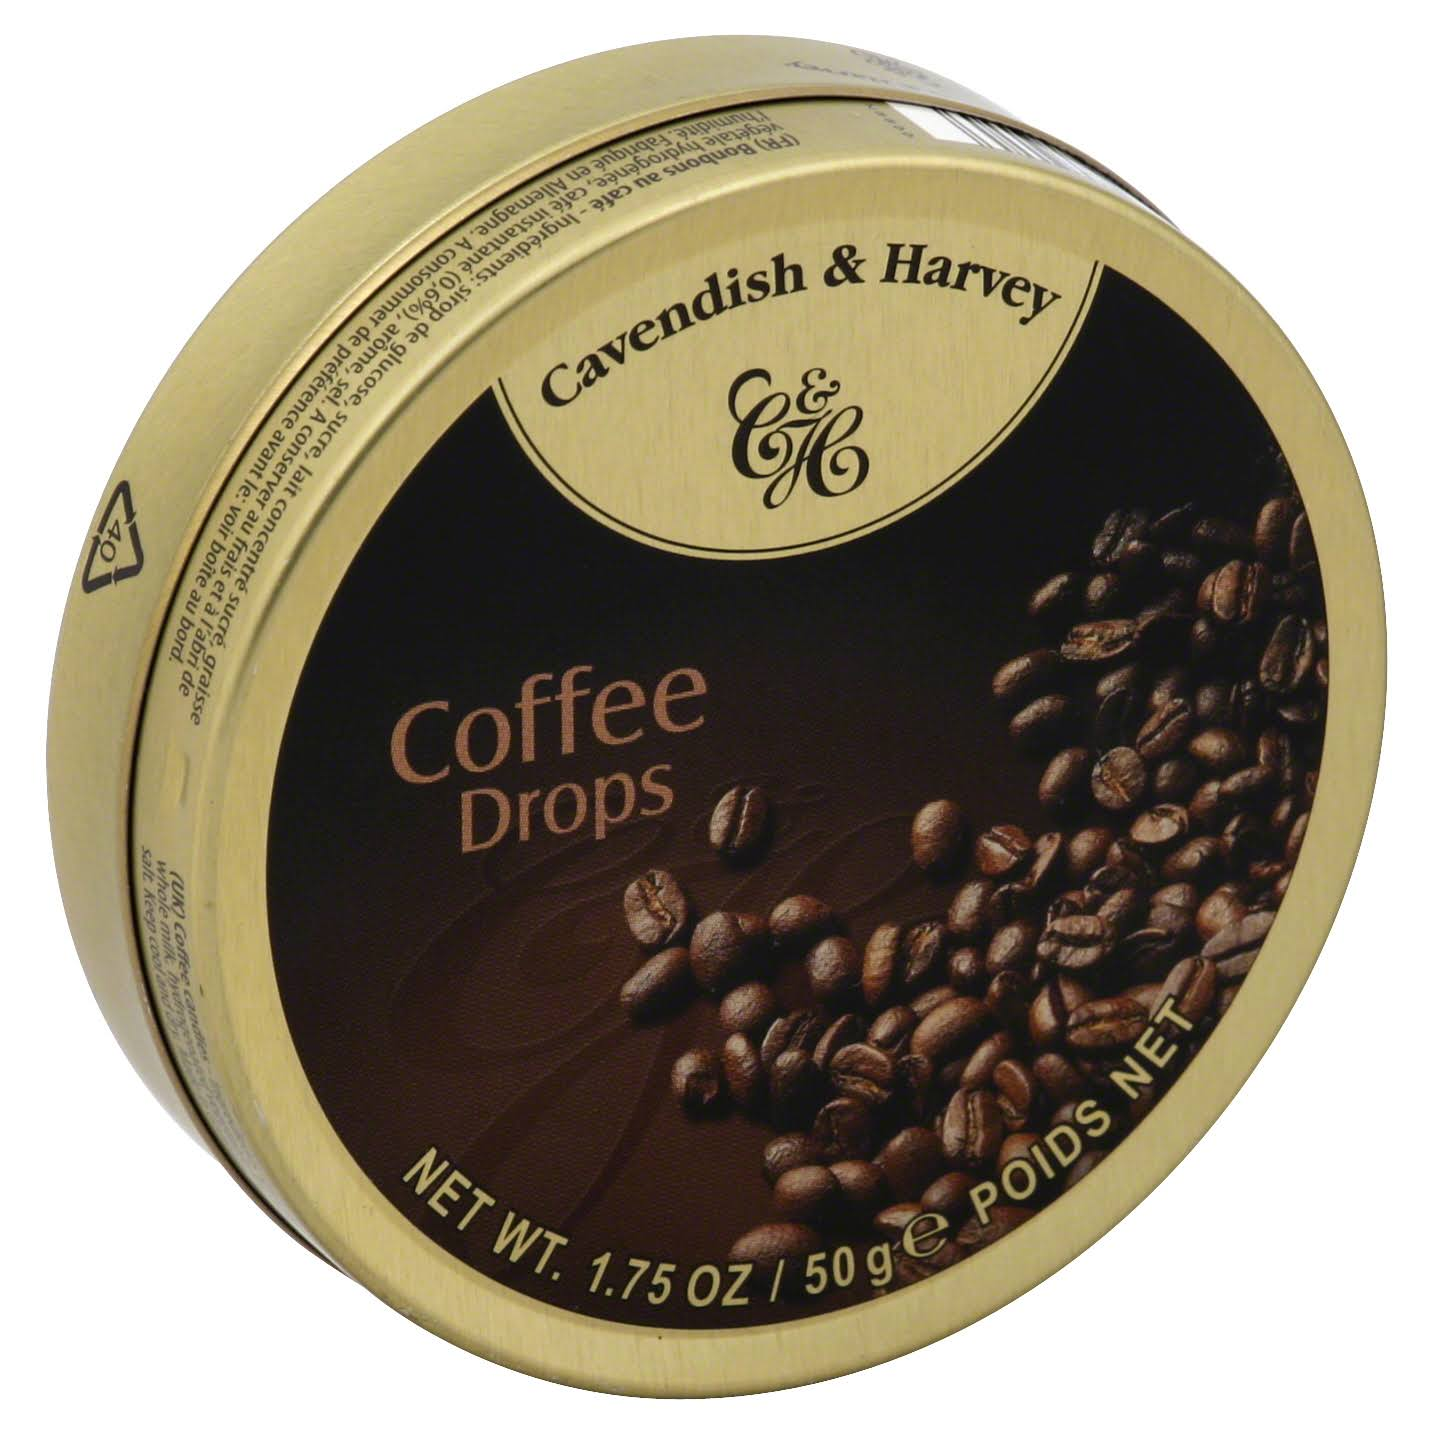 Cavendish & Harvey Coffee Drops - 1.75 oz pack